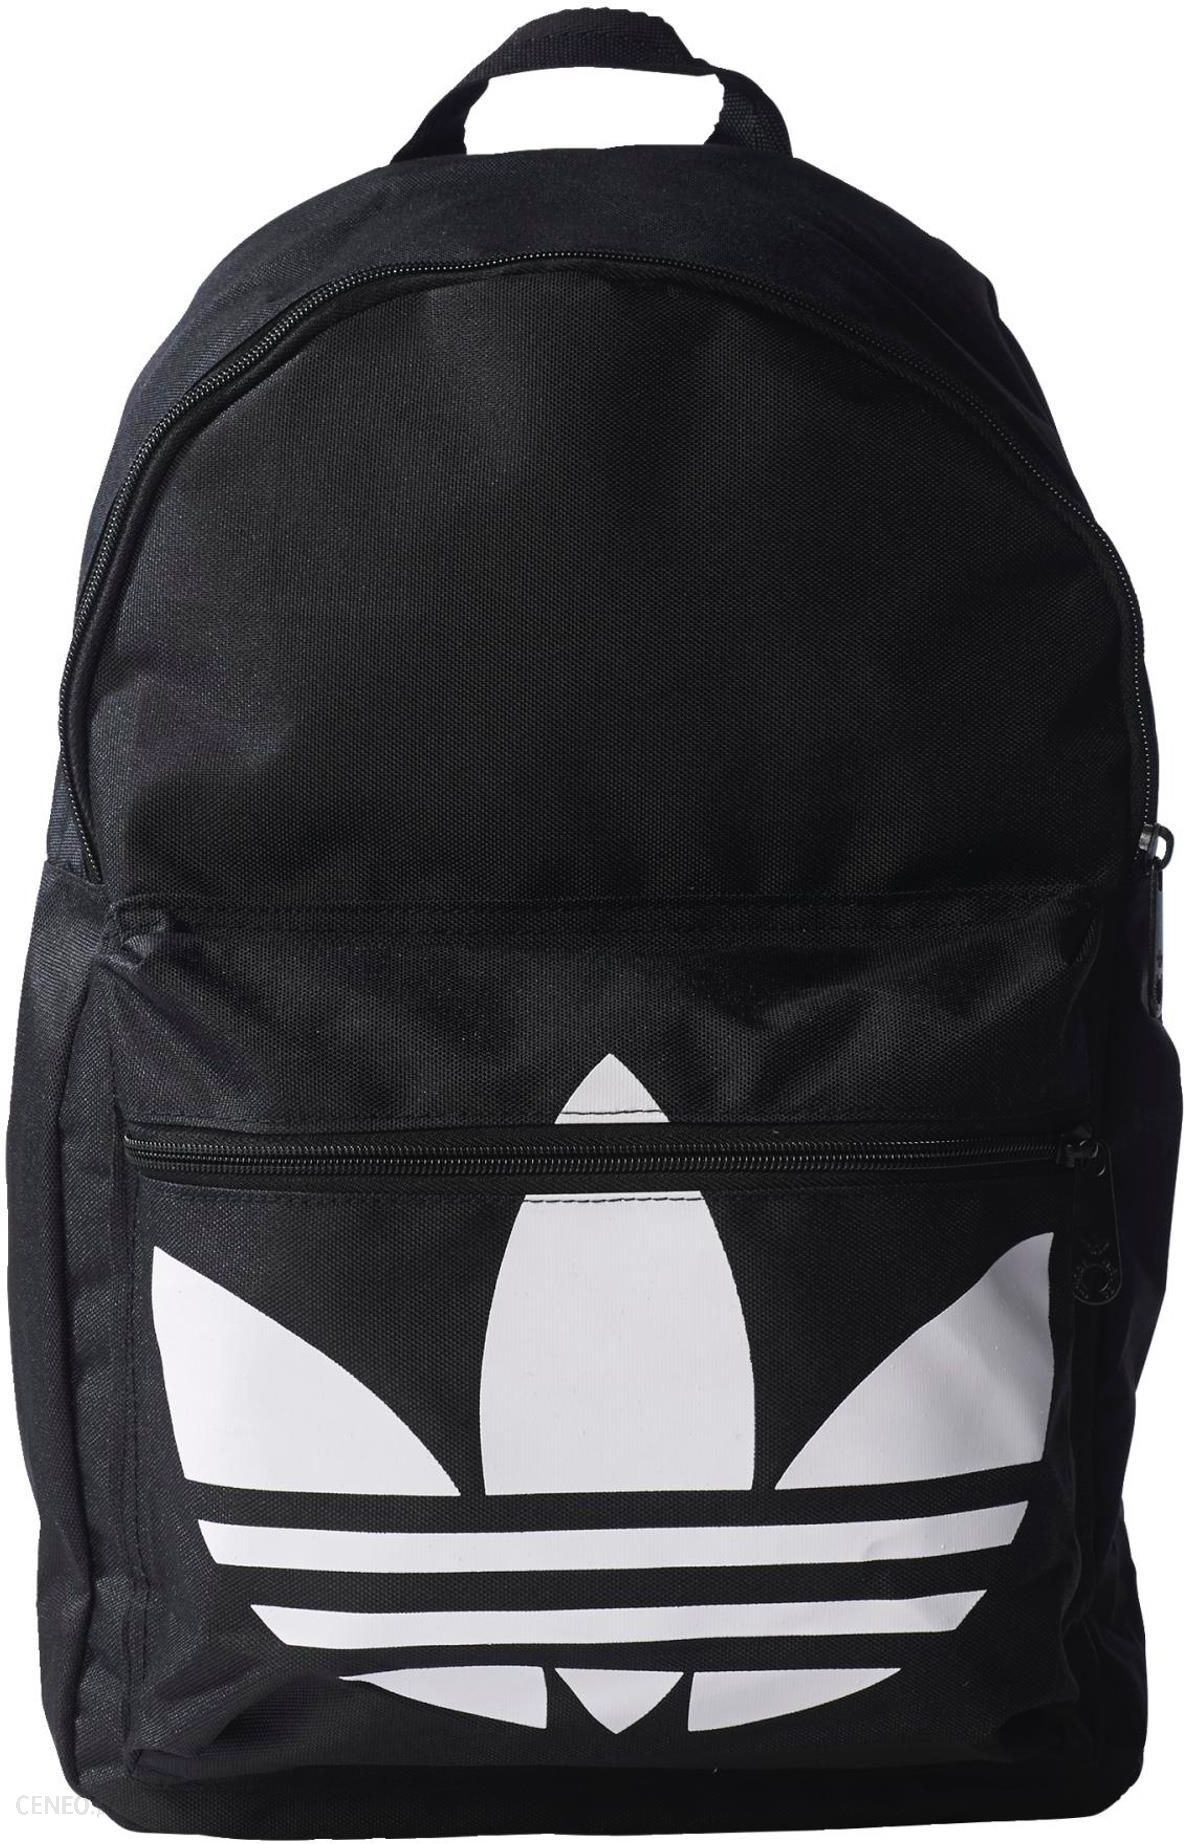 2c357faeced4a Plecak Adidas Originals Classic Trefoil Backpack Aj8527 - Ceny i ...